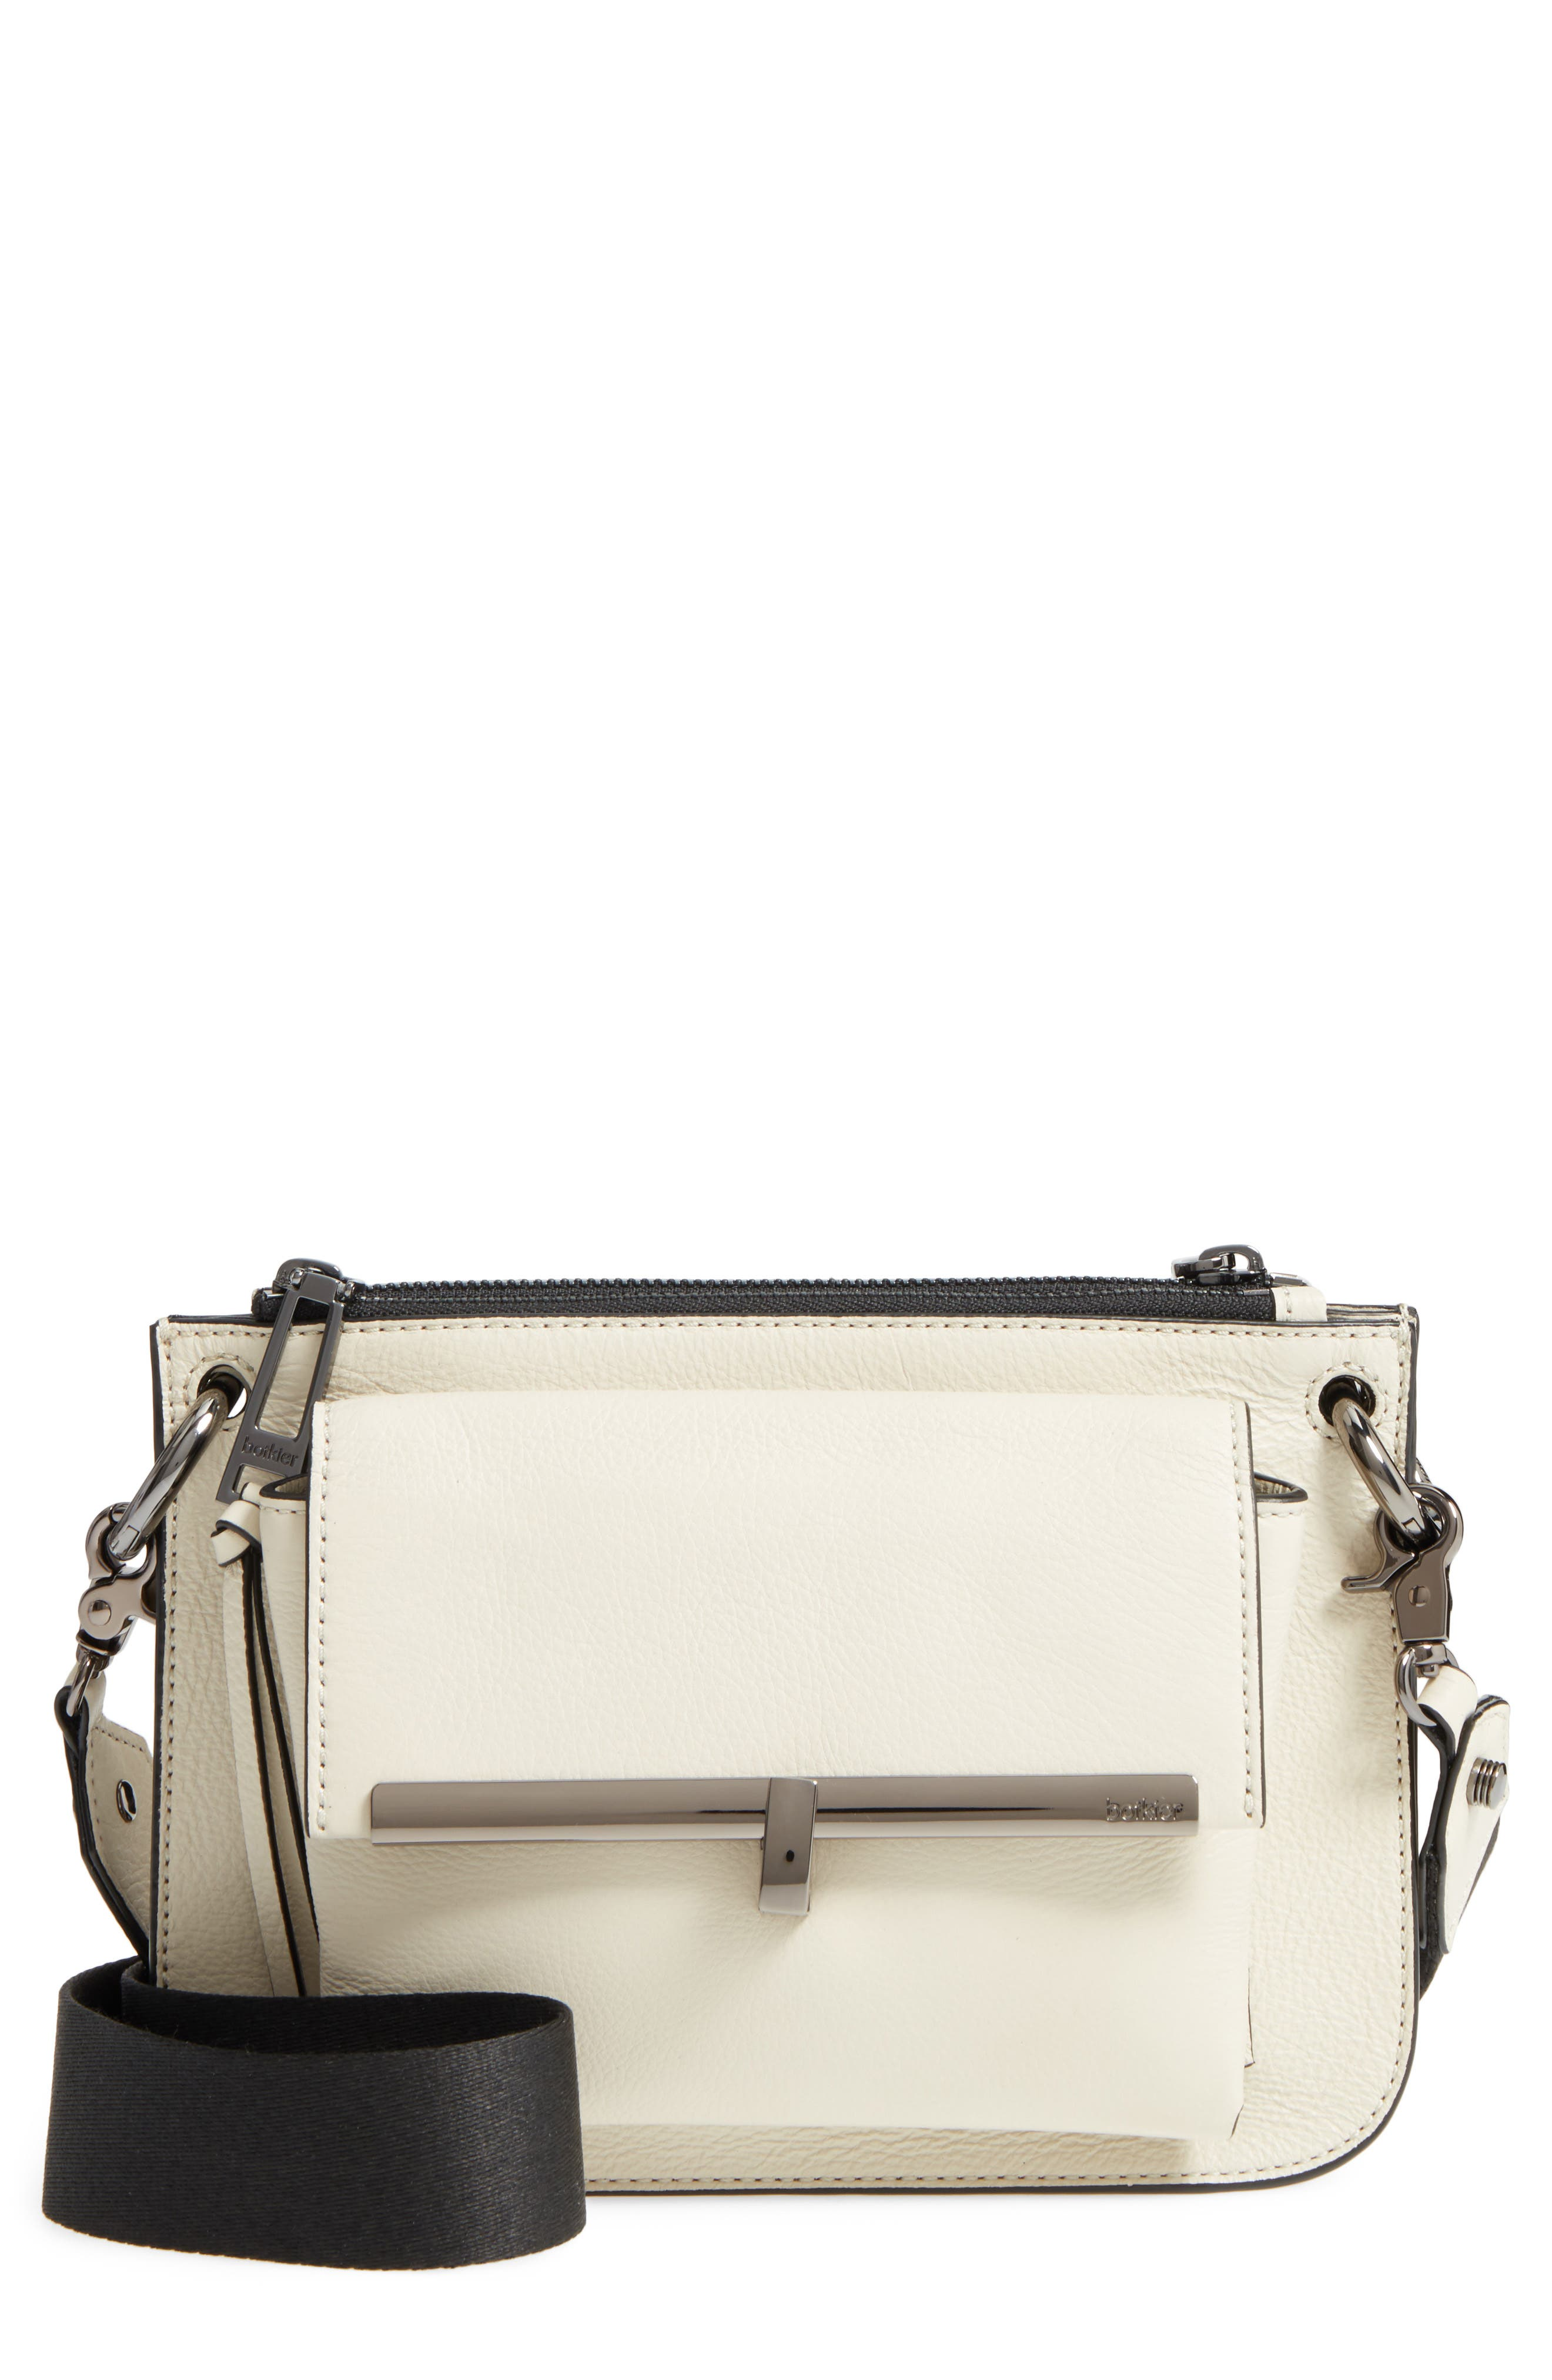 Botkier Bleeker Leather Double Shoulder Bag